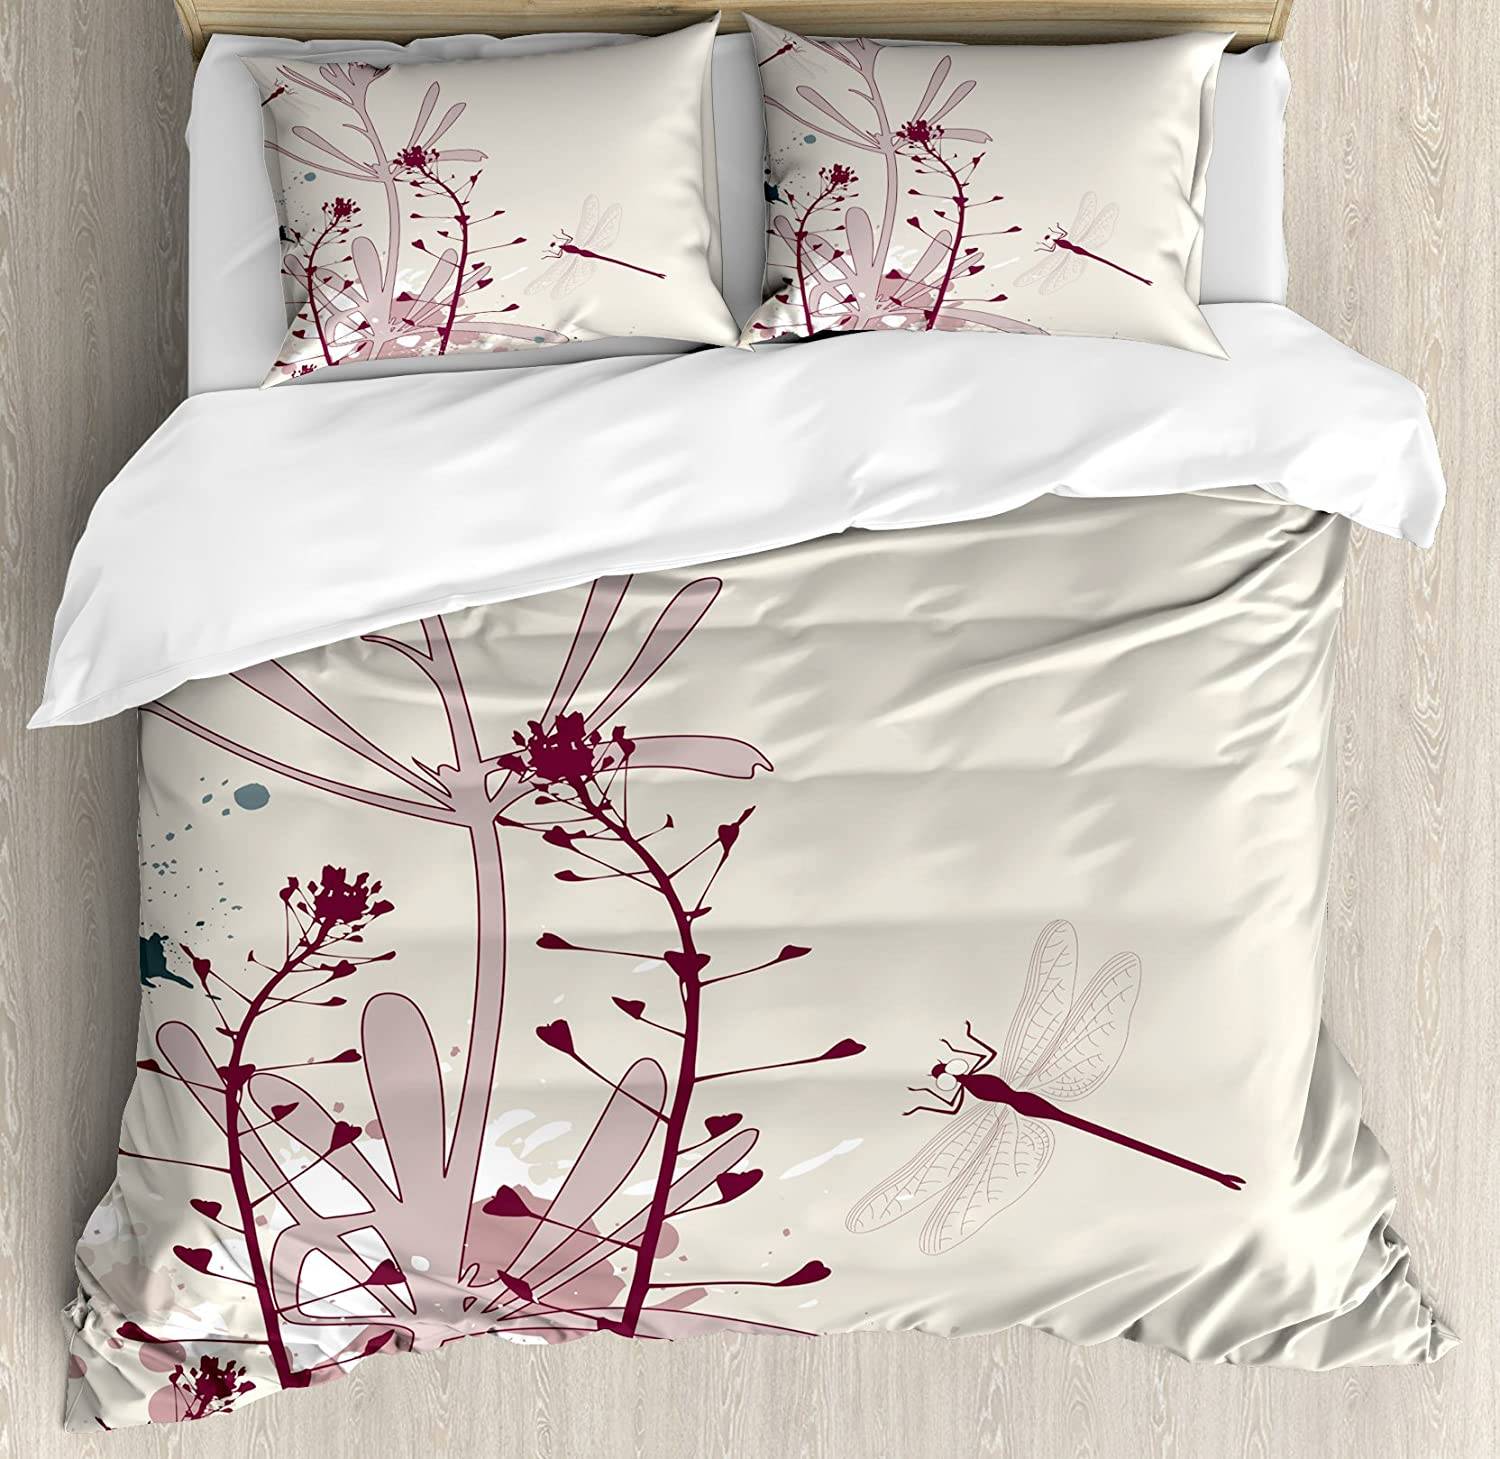 Ambesonne Dragonfly Duvet Cover Set, Grunge Style Design Flowers Leaves and Bugs Flies Wings Image, Decorative 3 Piece Bedding Set with 2 Pillow Shams, Queen Size, Pink Burgundy